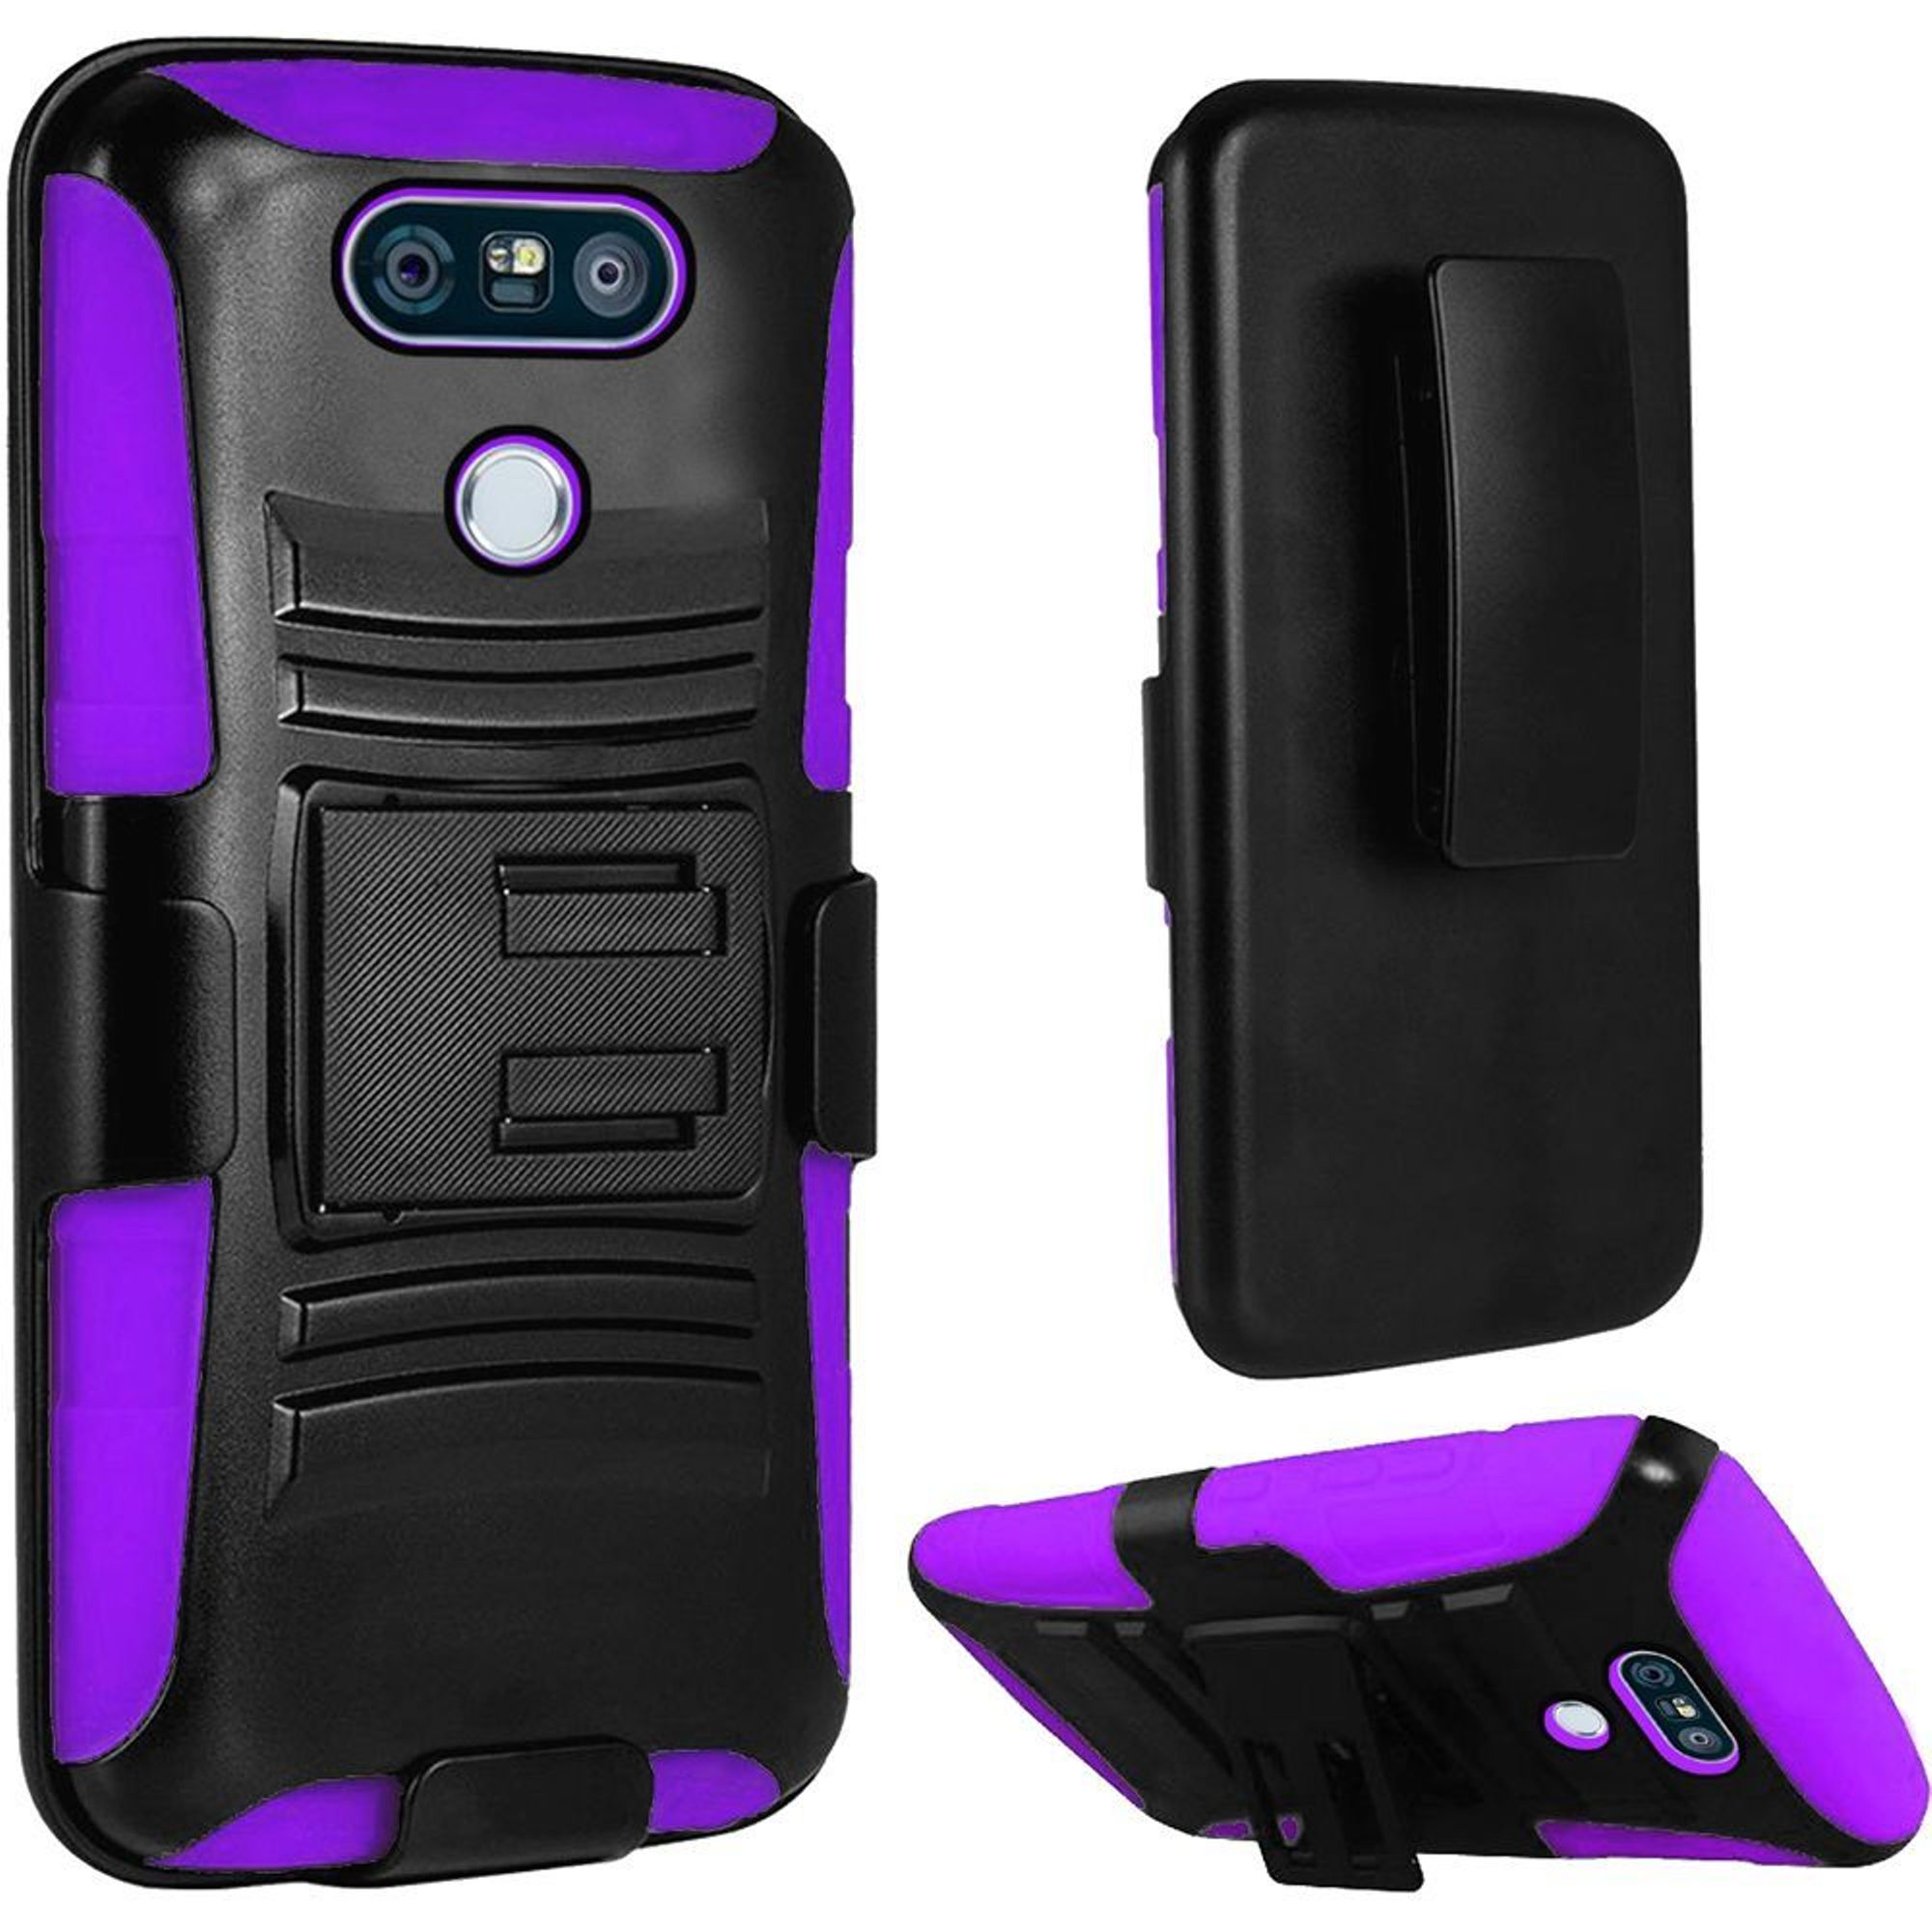 LG G6 Case, by HR Wireless Dual Layer Hybrid Hard Plastic/Soft Silicone Case Cover Holster For LG G6, Black/Purple